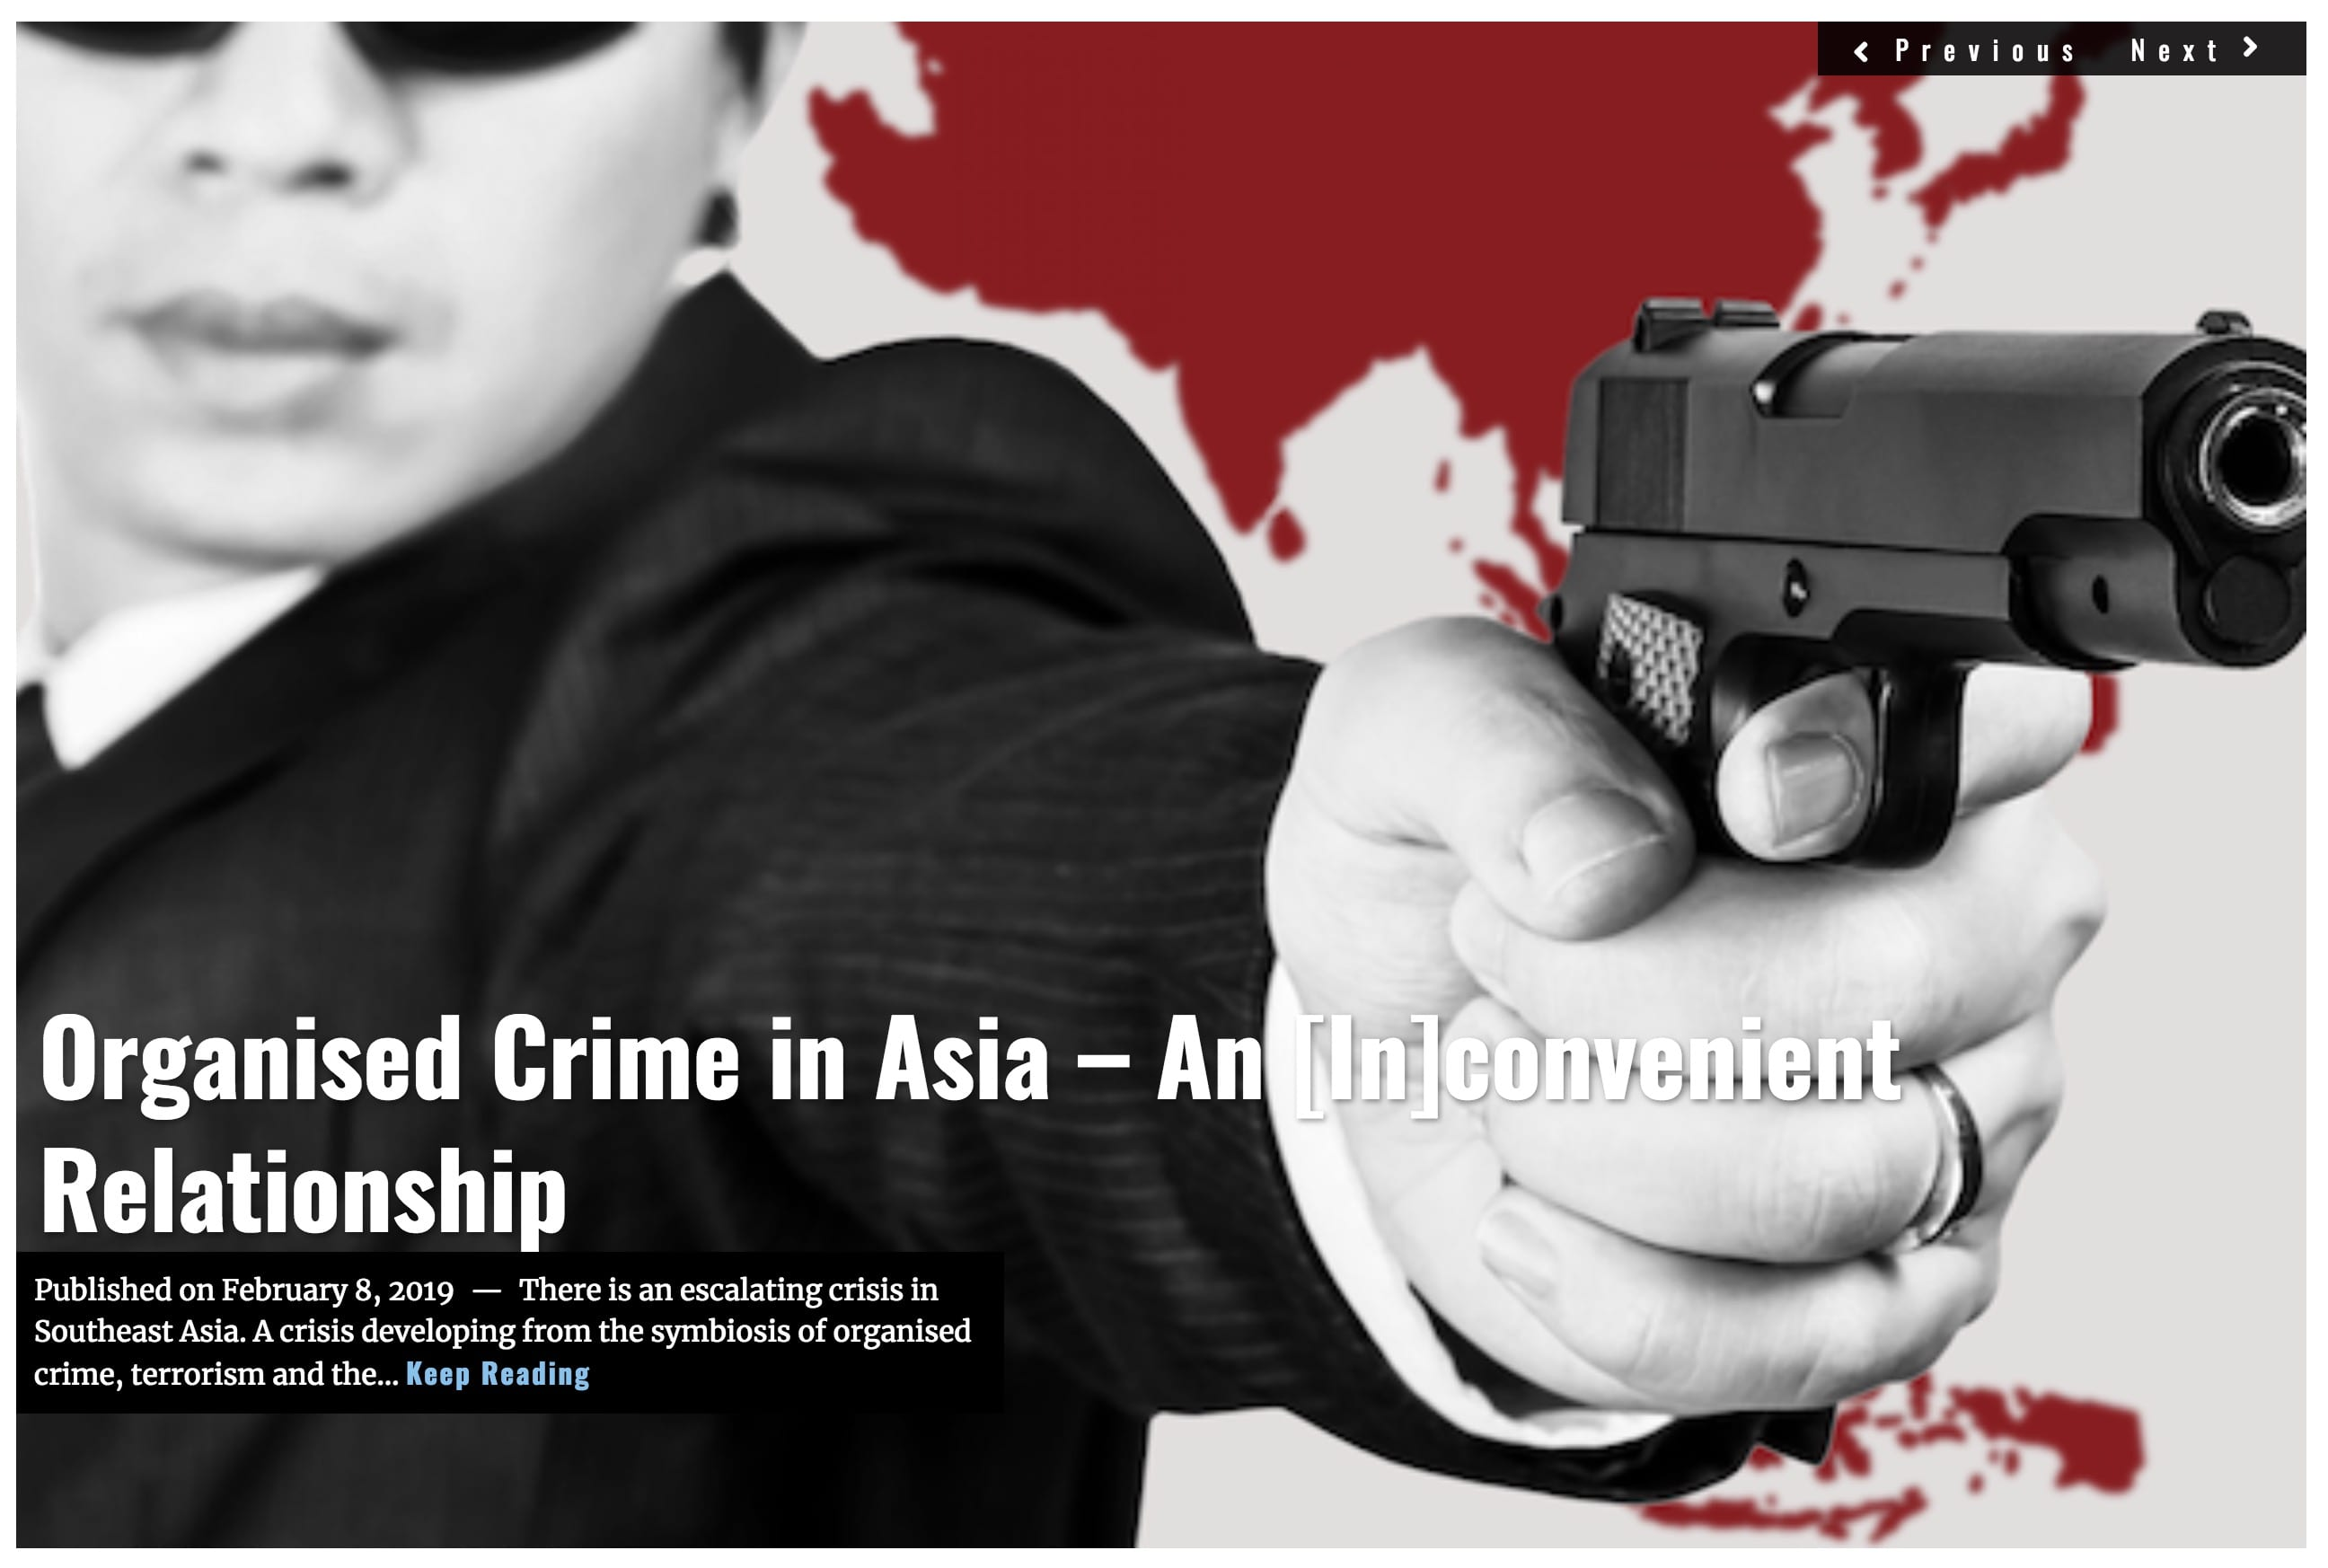 Image Lima Charlie News Headline - Organised Crime Asia FEB 8 2019